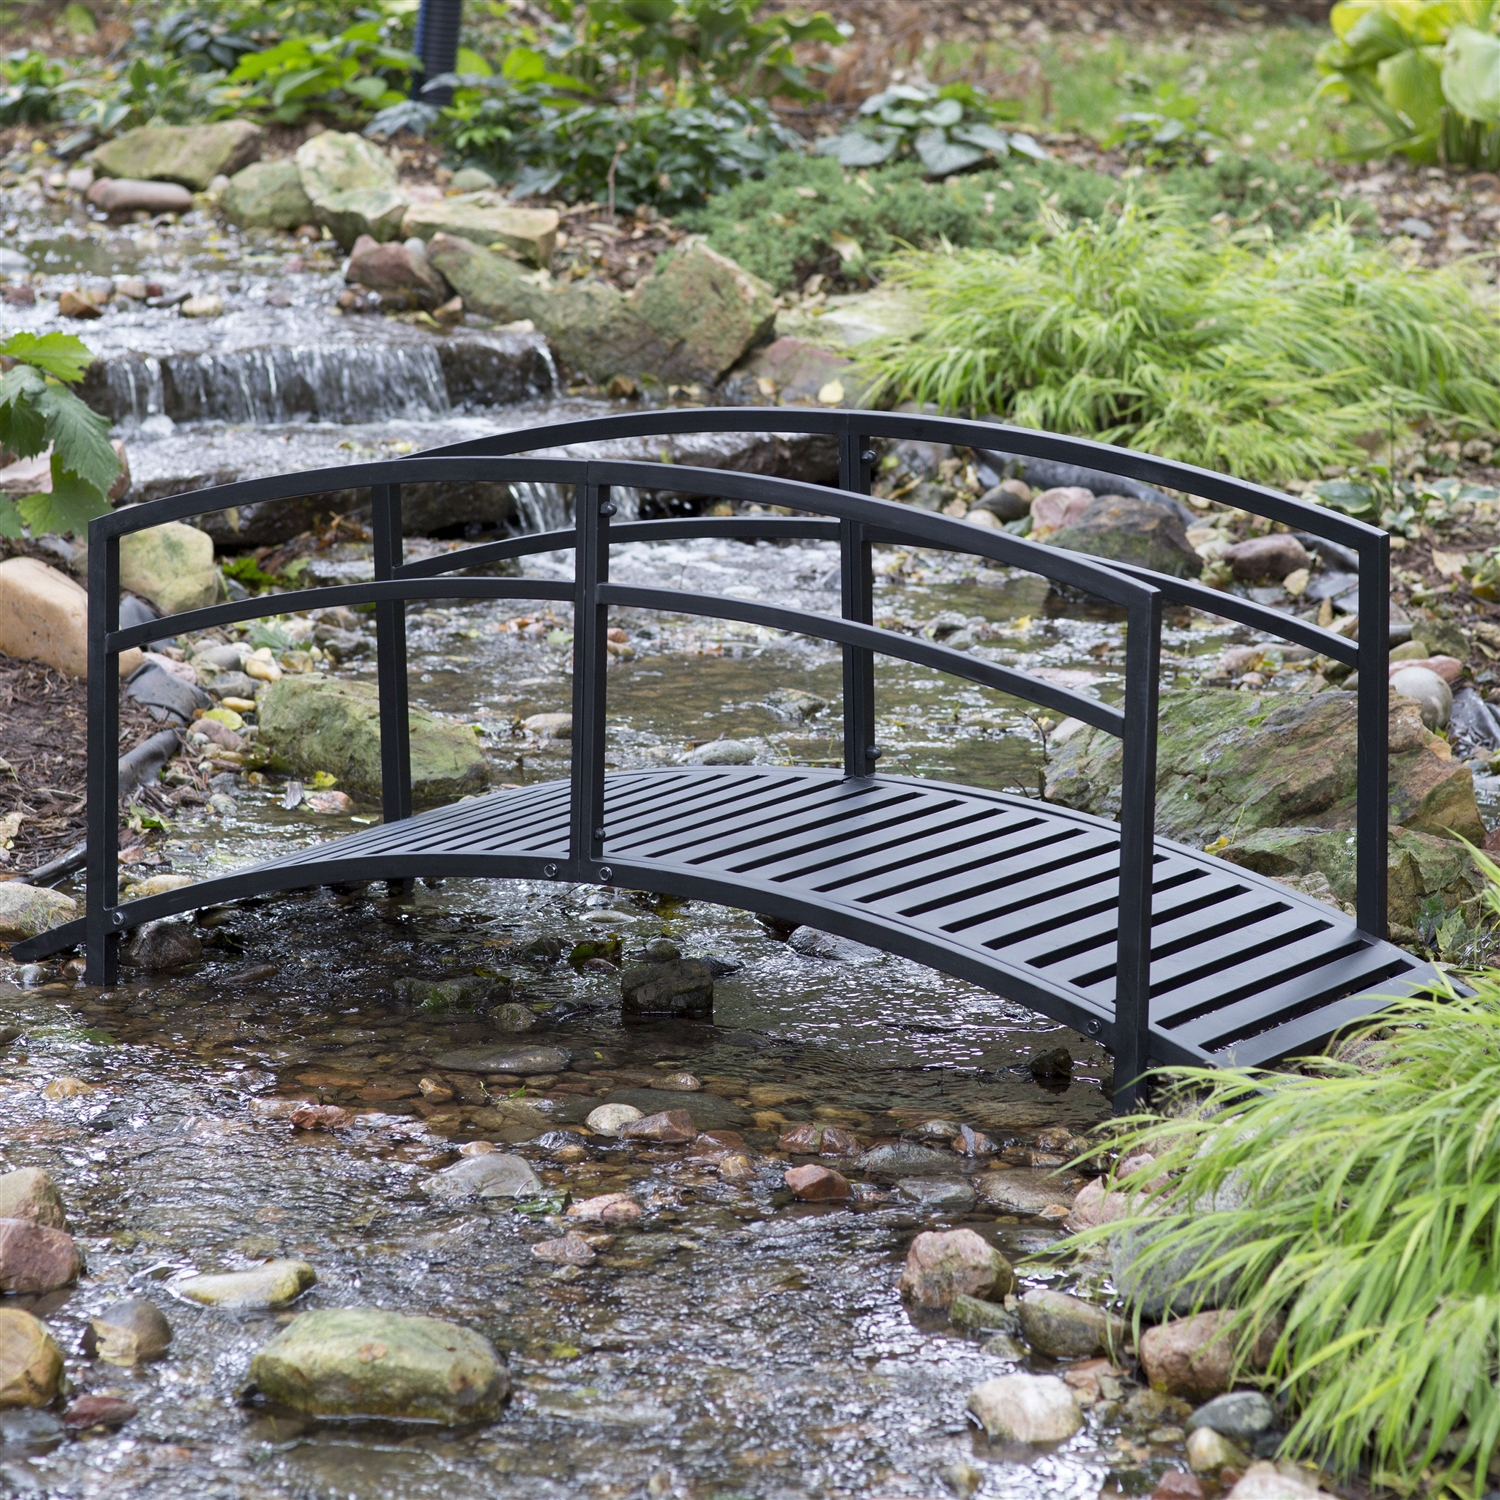 Slatted Room Divider Sturdy 6 Foot Black Metal Garden Bridge With Double Arch